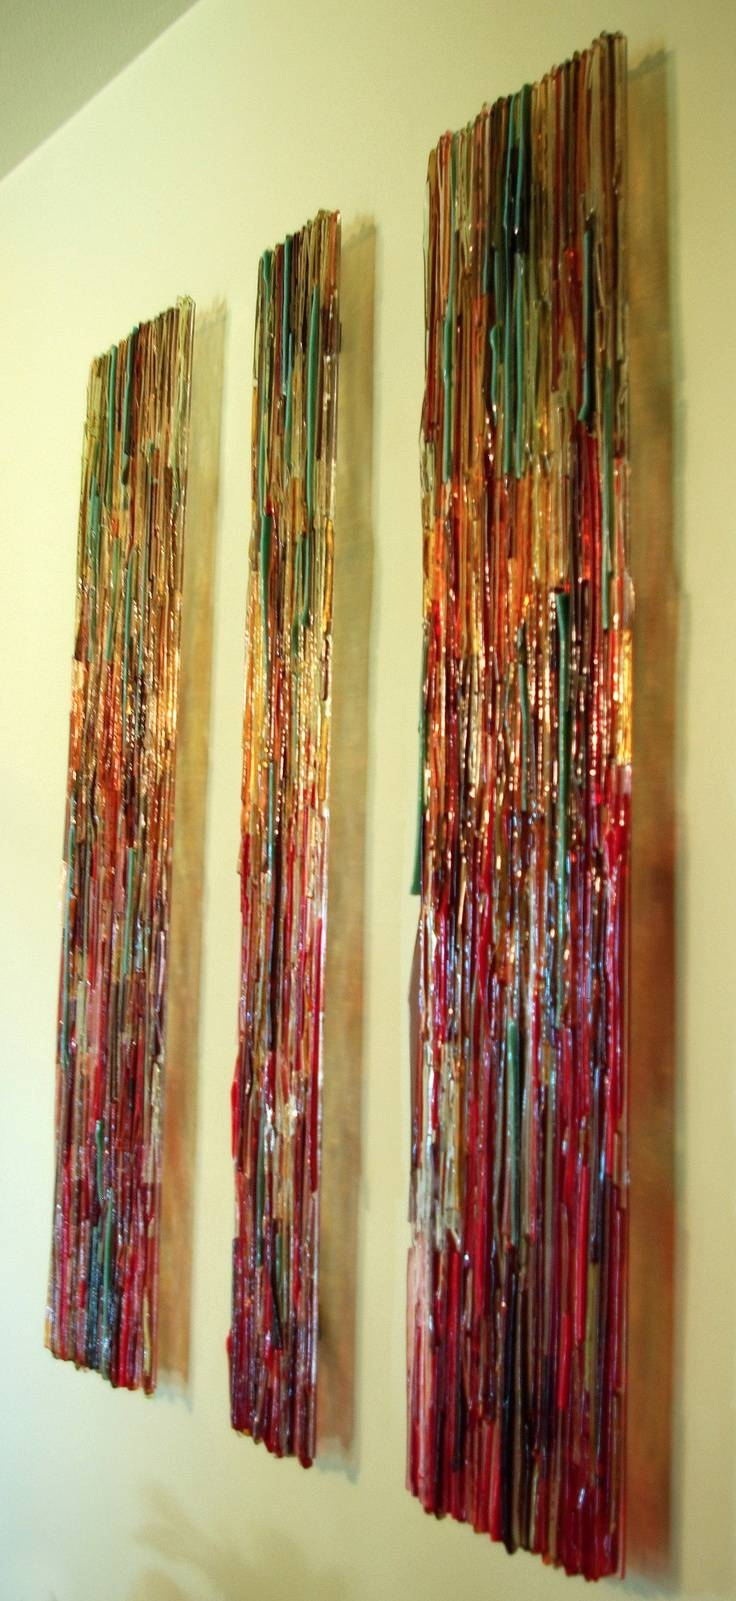 Glass Wall Art Design Inspiration Glass Wall Art – Home Decor Ideas For Current Fused Glass Wall Art (Gallery 14 of 25)